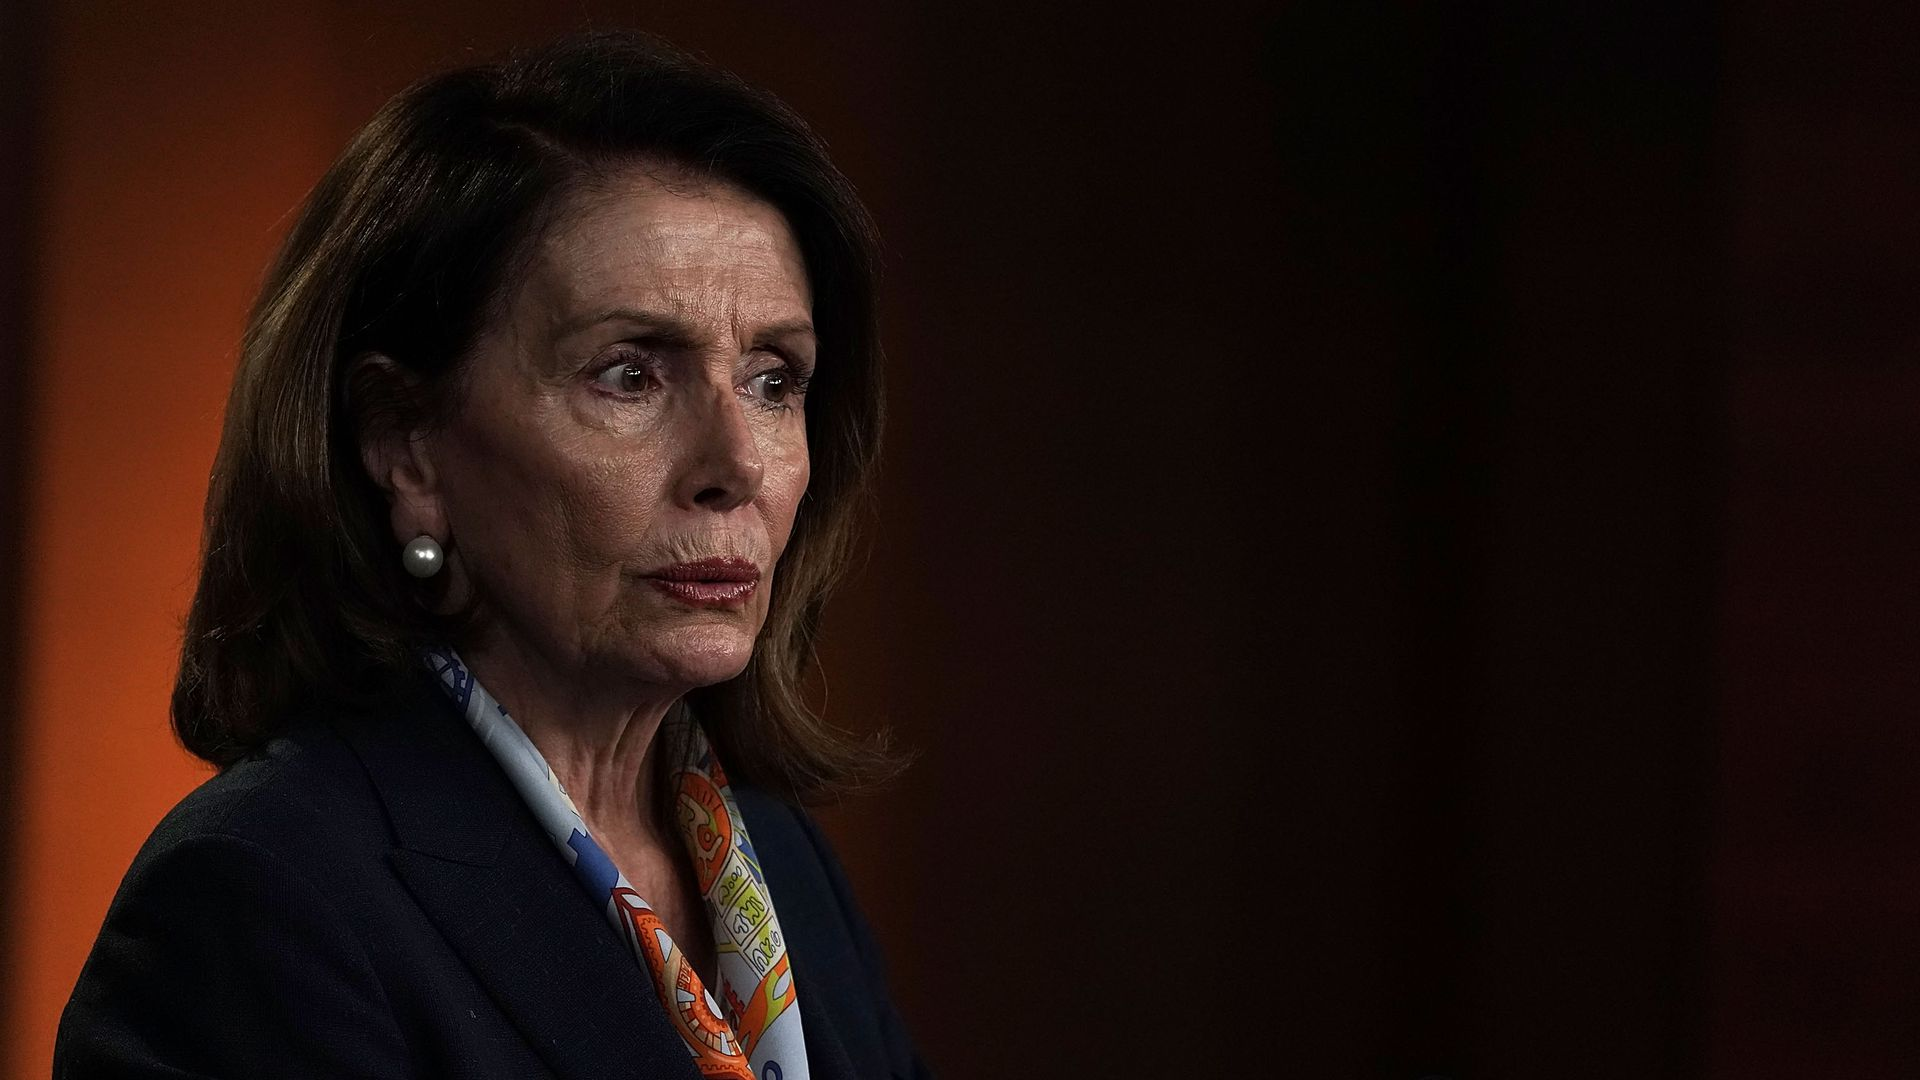 Nancy Pelosi in a dark suit with a colorful scarf before a black and orange backdrop.